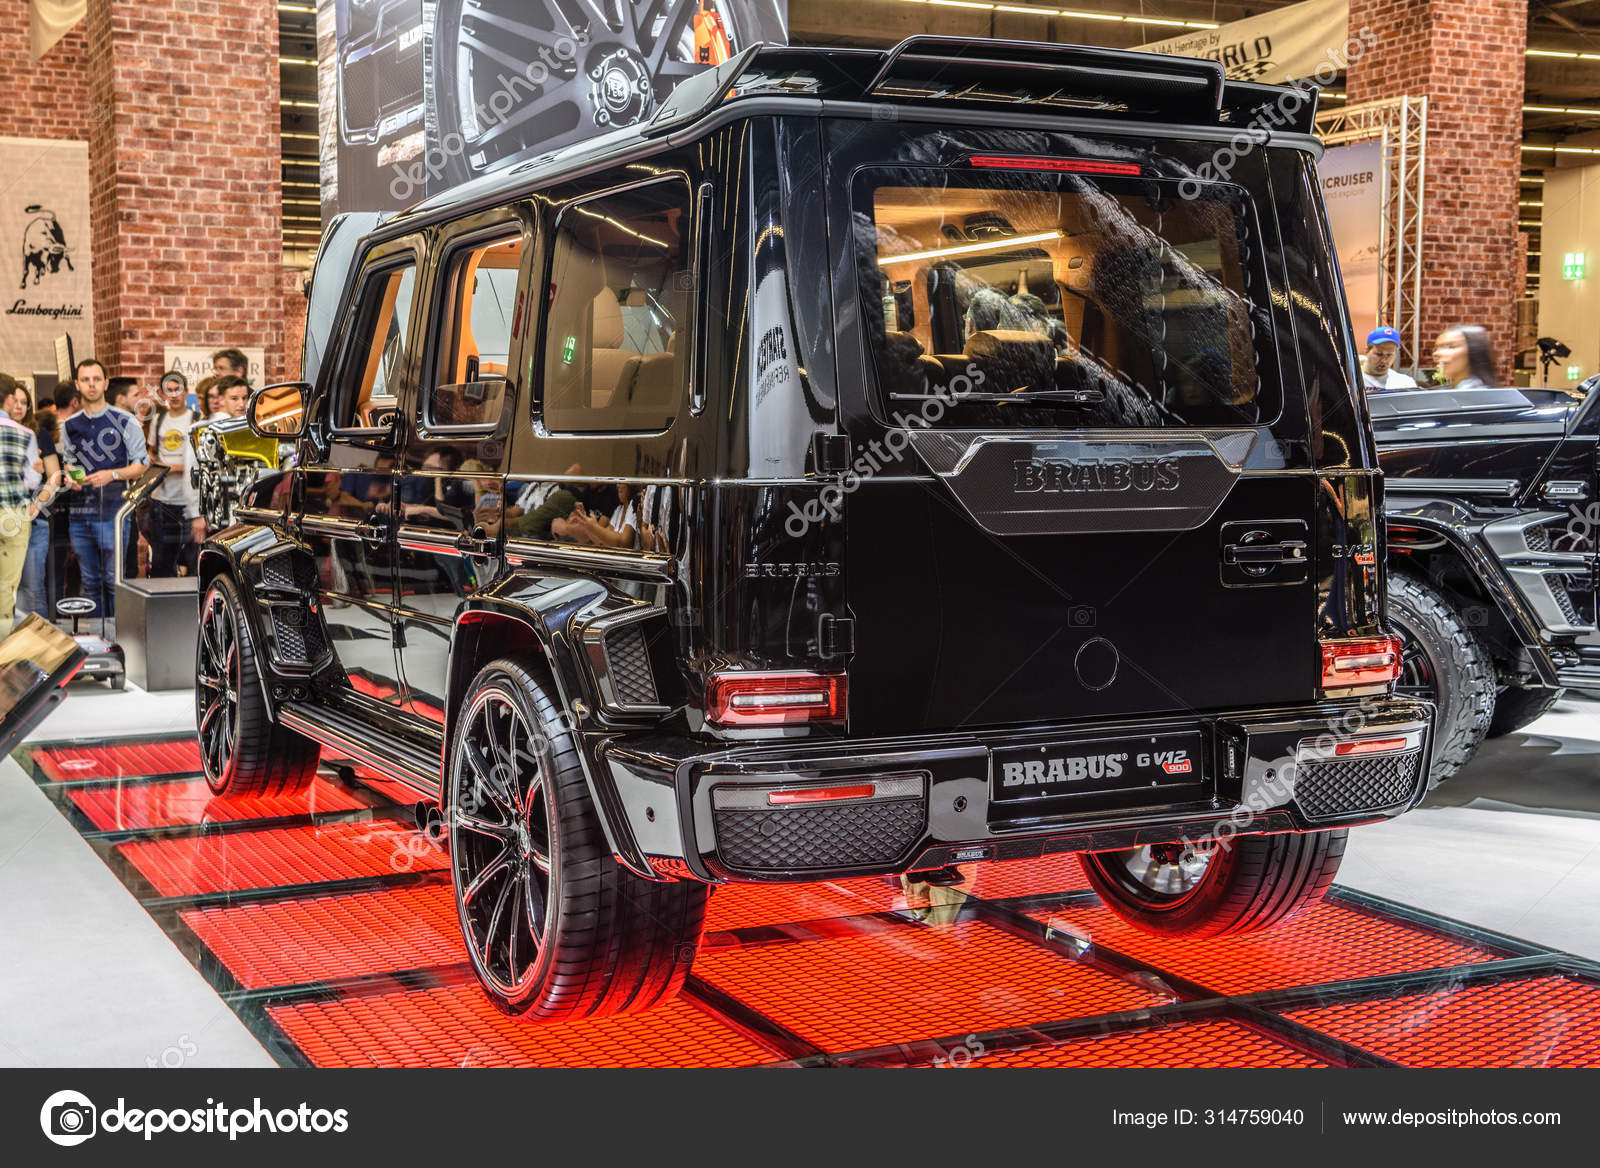 Frankfurt Alemanha Sept 2019 Black Mercedes Benz G Class Brabus 850 Widestar W463 Suv Iaa International Motor Show Auto Exhibtion Fotografia De Stock Editorial C Eagle2308 314759040